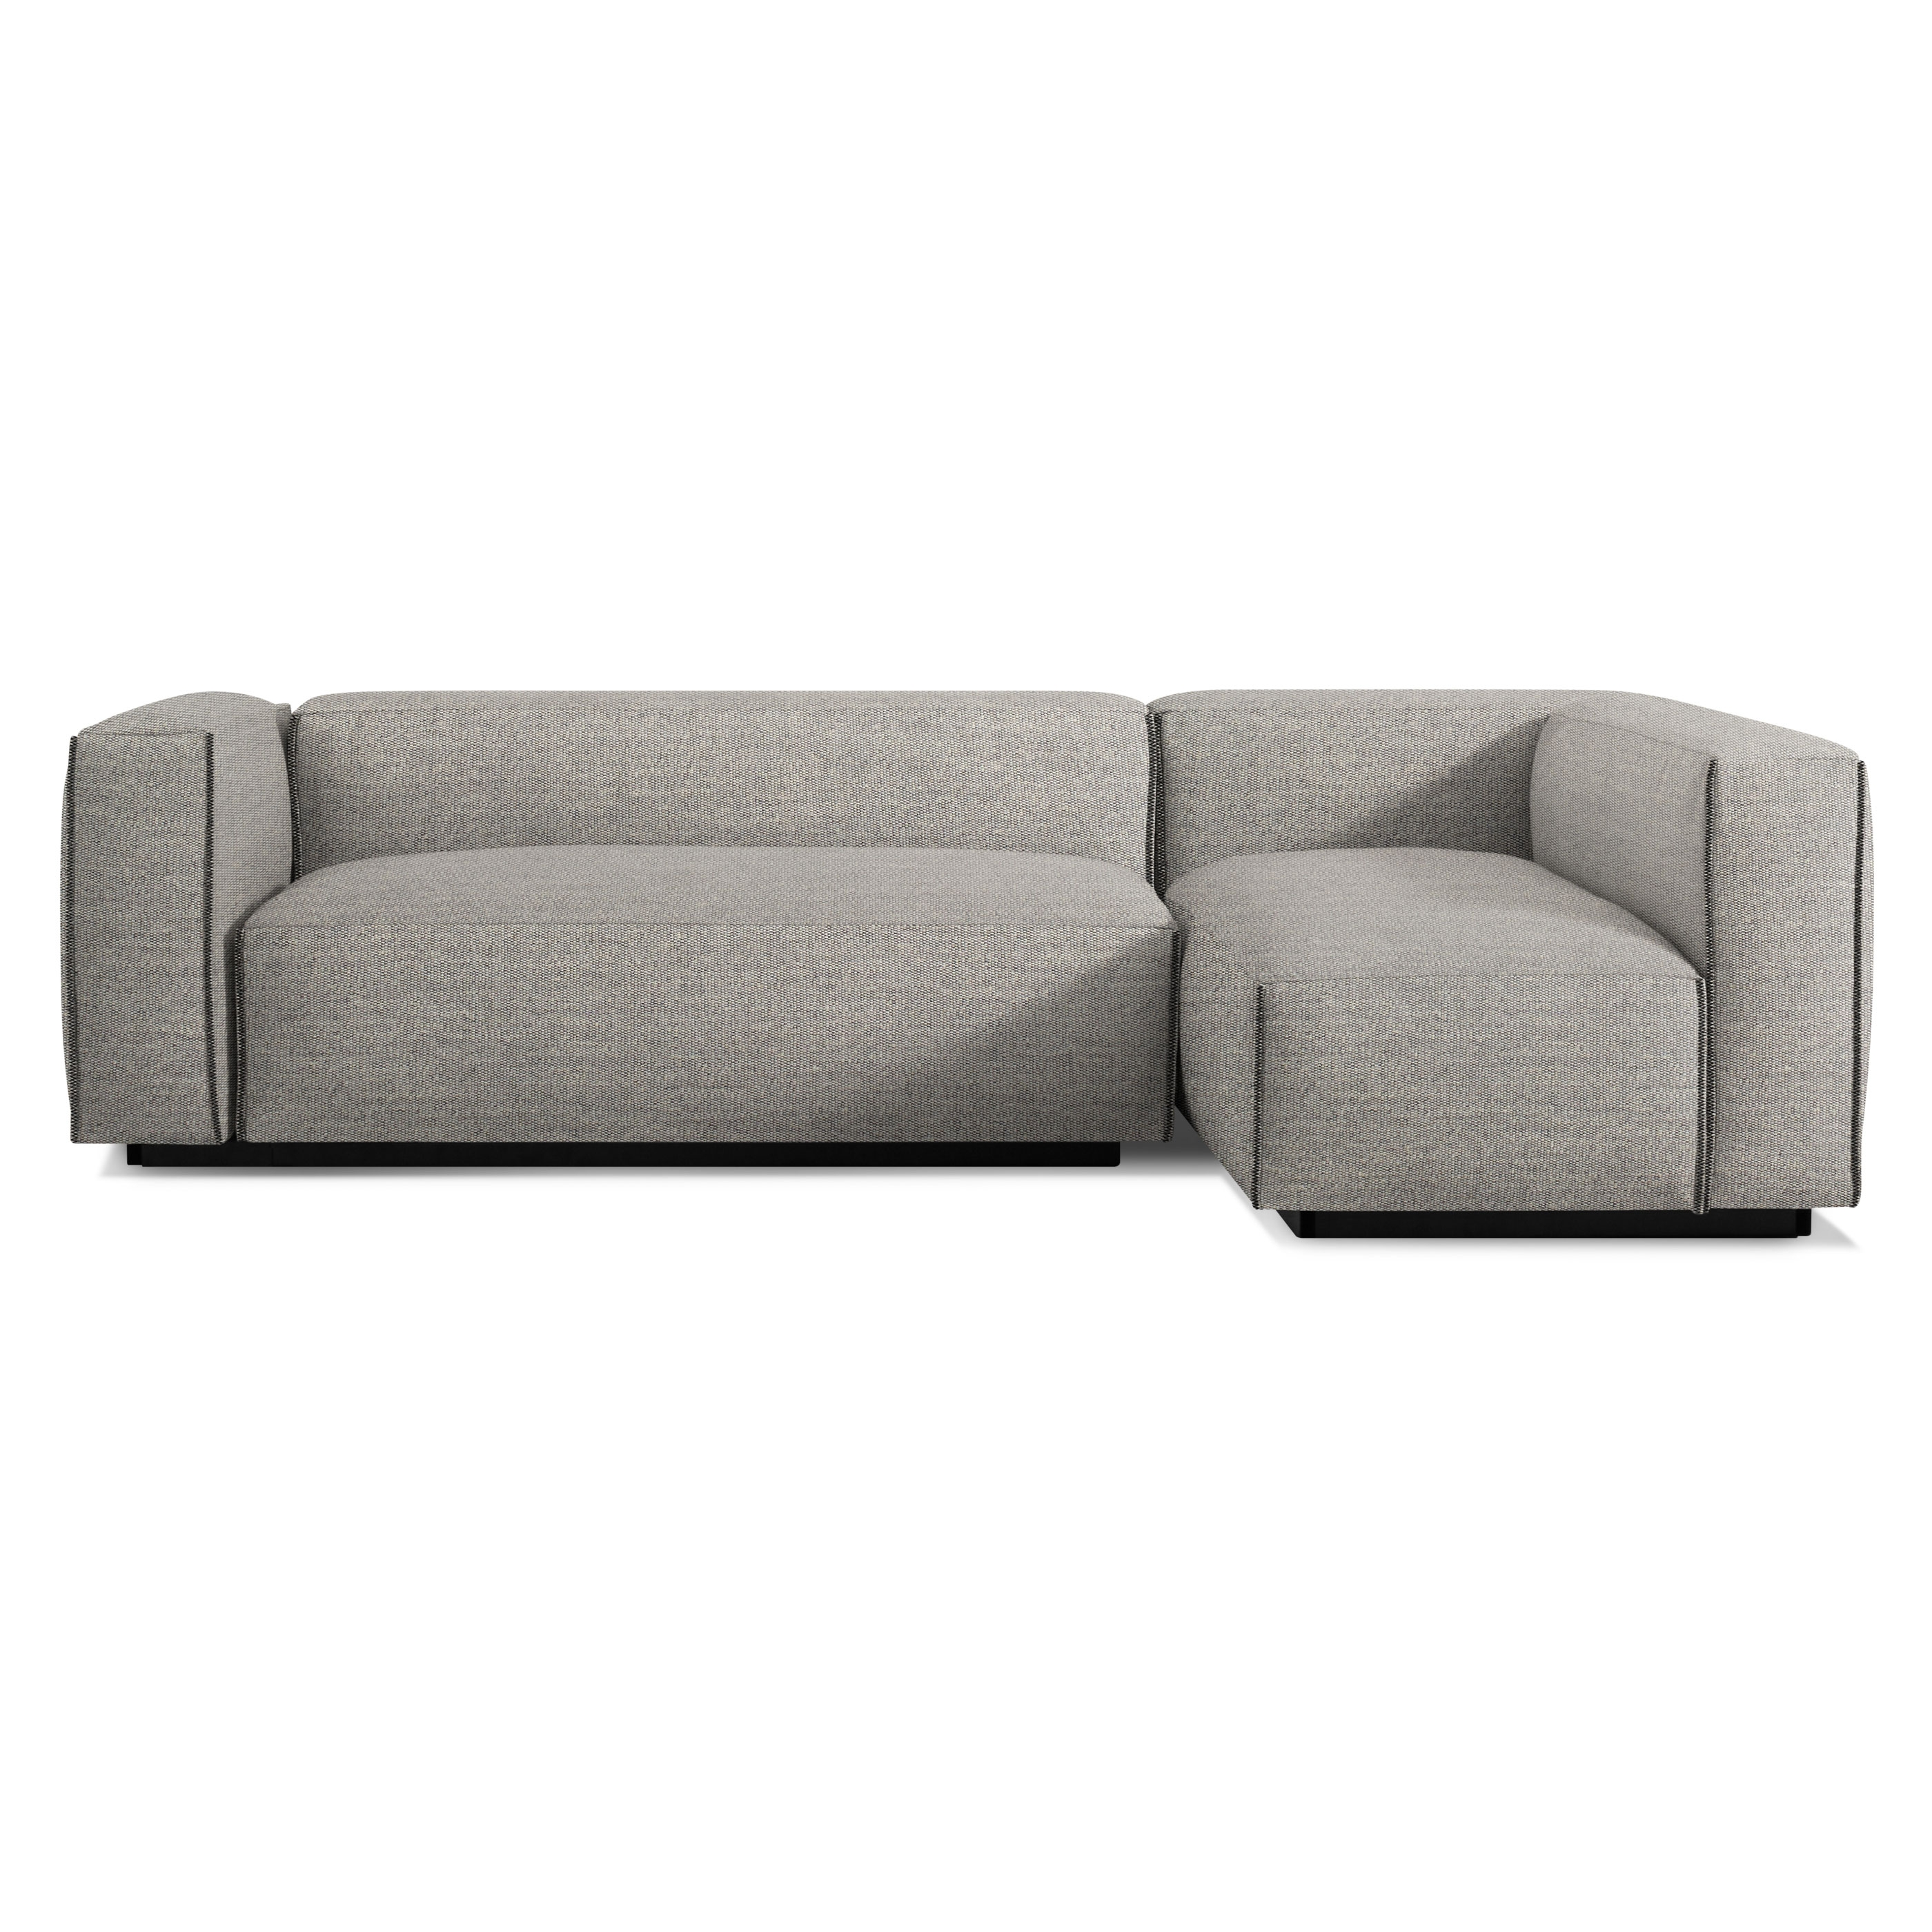 previous image cleon small sectional sofa - tait charcoal ... PVTNPCF